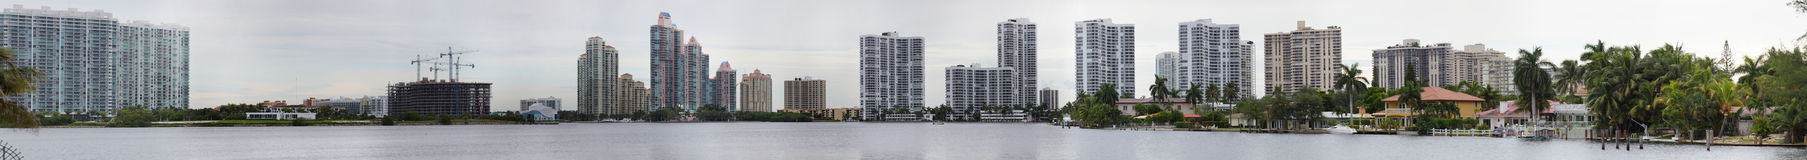 Aventura Florida Stock Photos